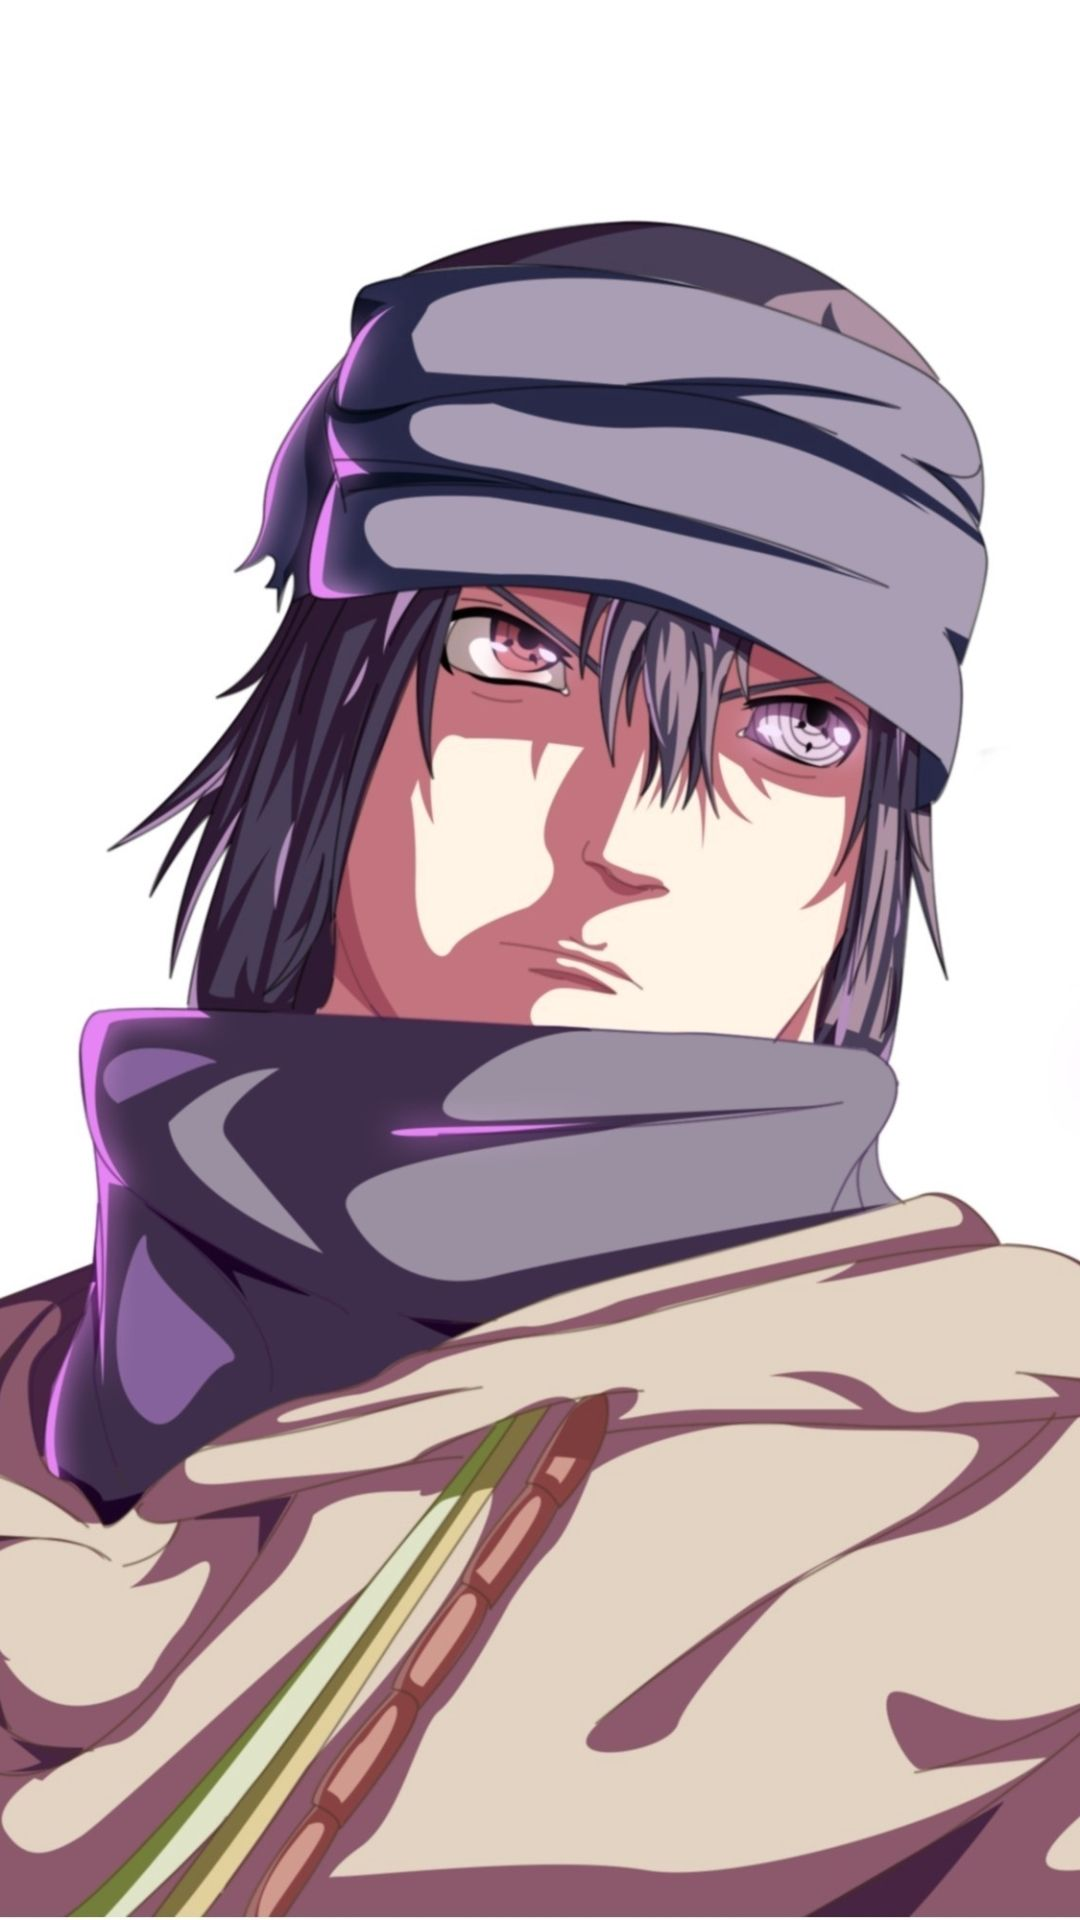 7 Top Sasuke Wallpapers Picture For Your Android or Iphone